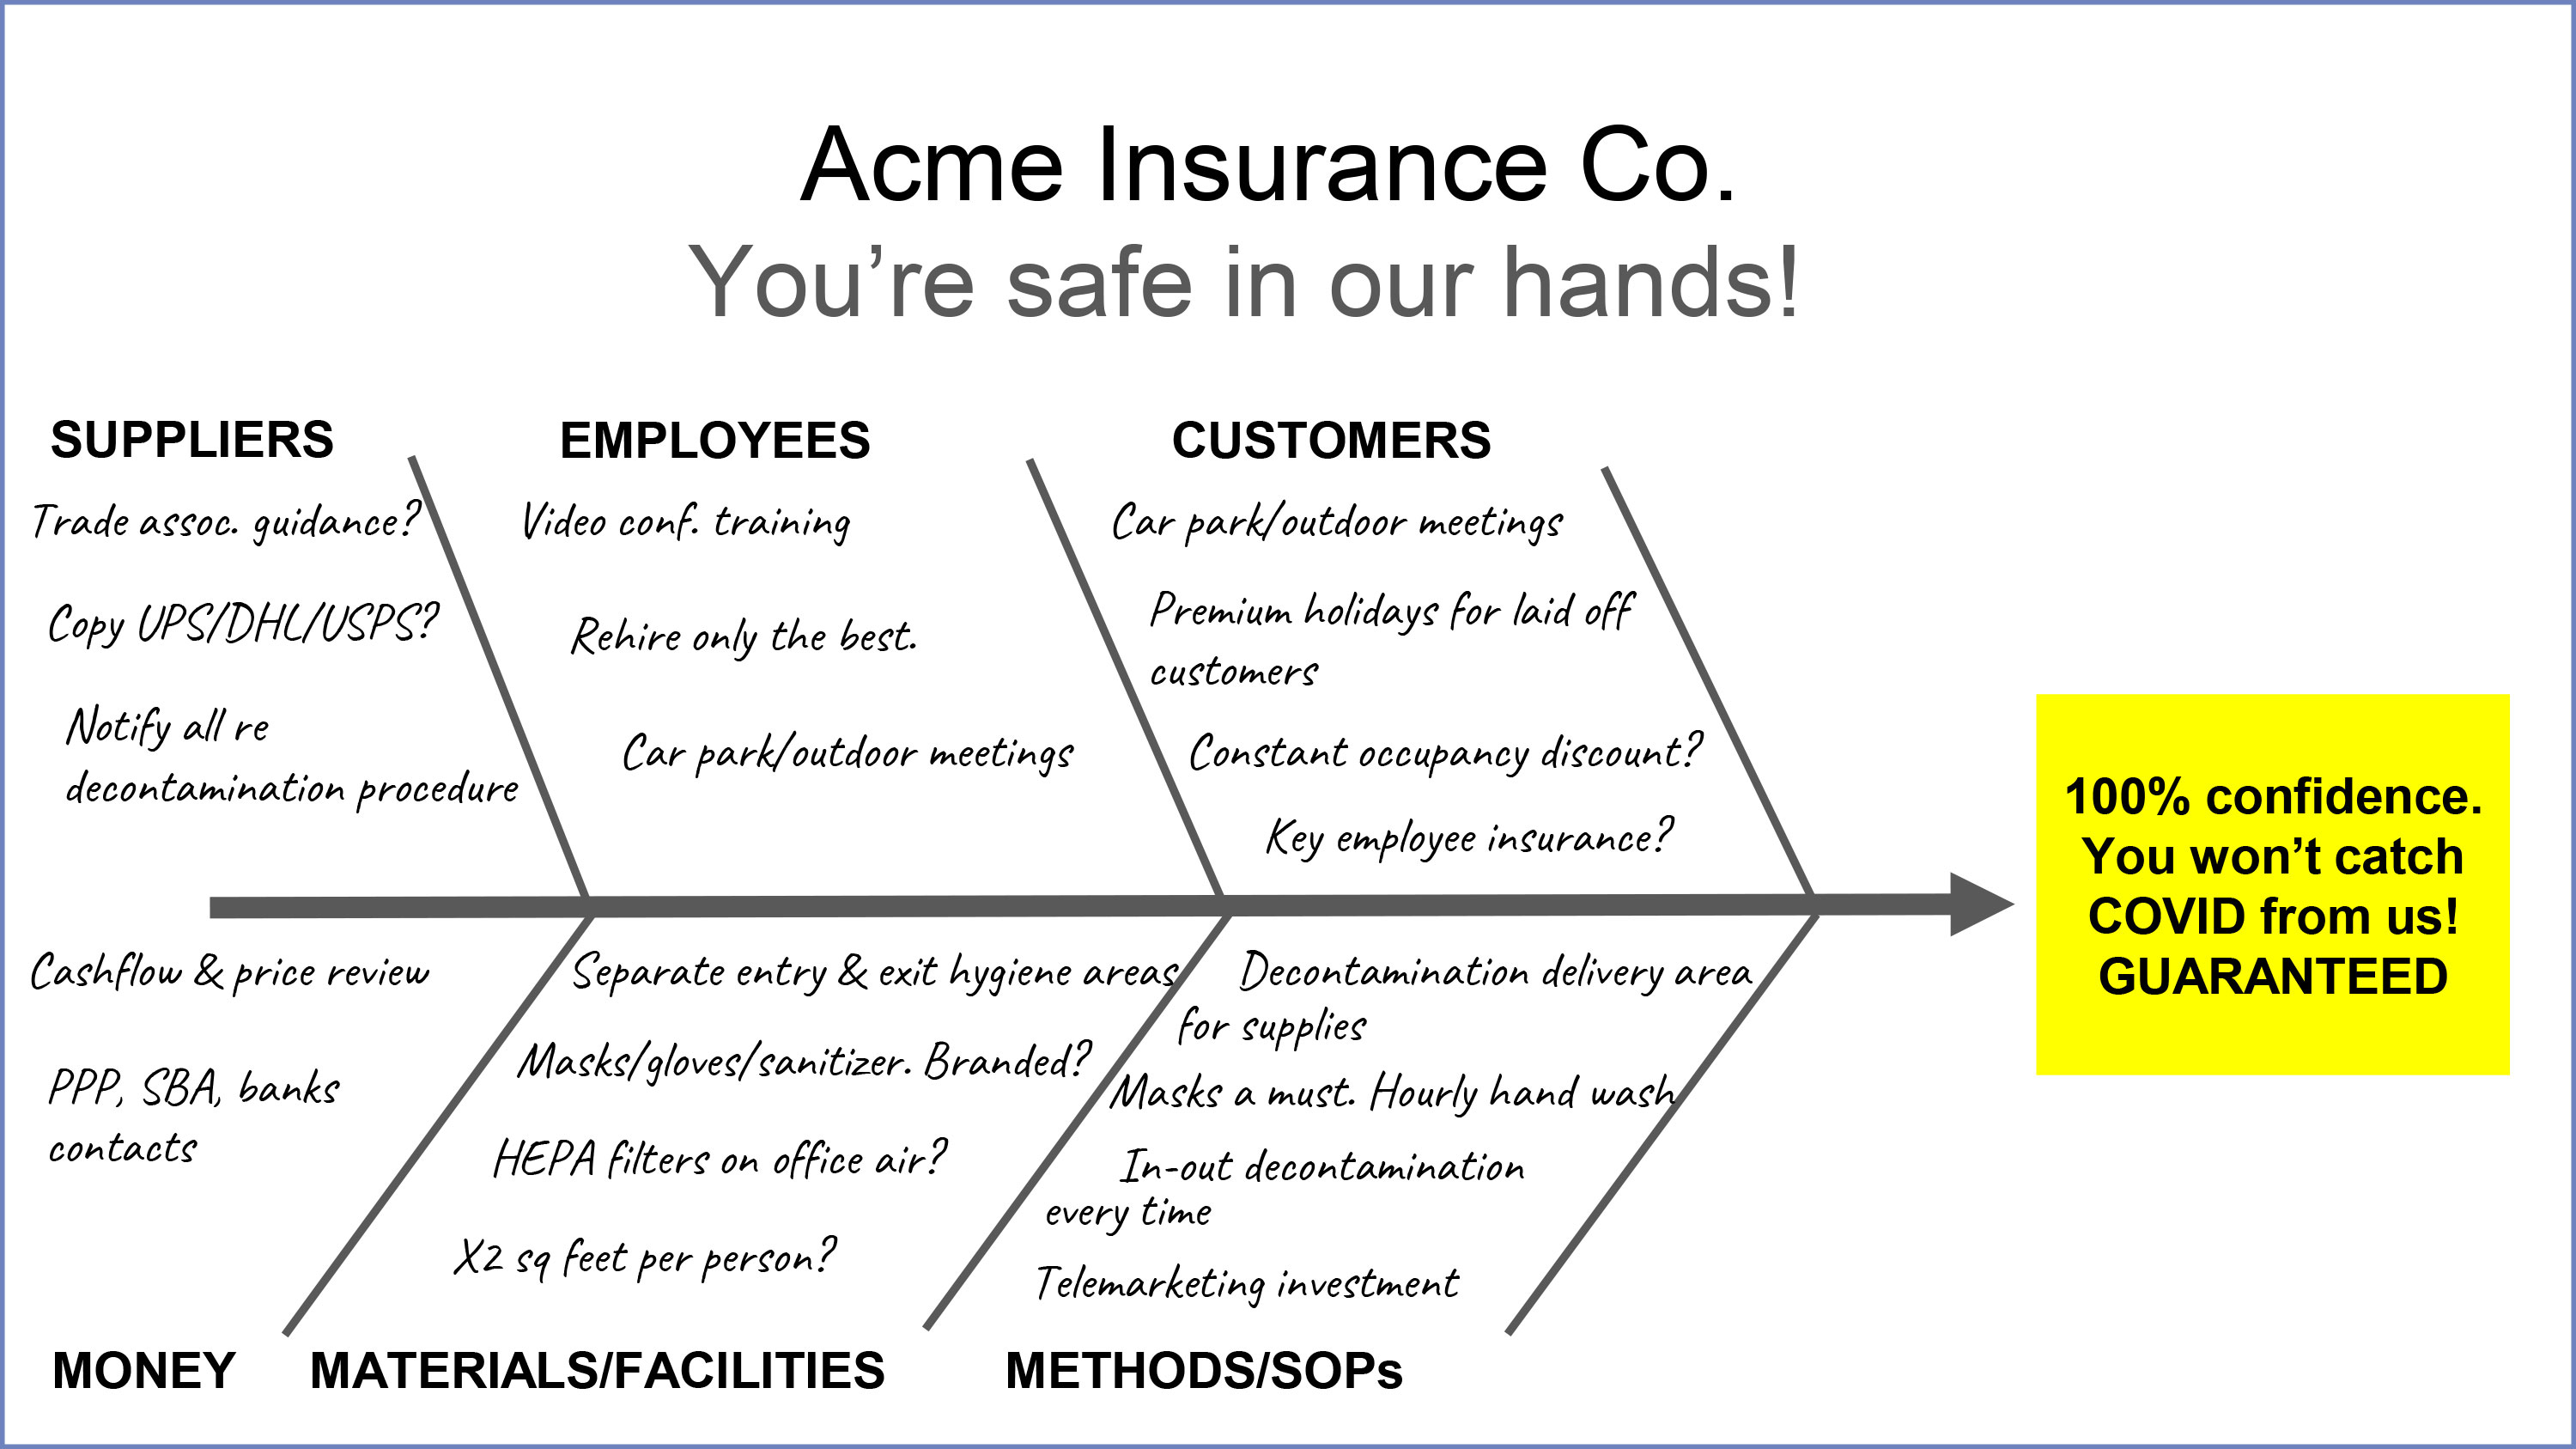 Acme Insurance Company You are Safe in our hands